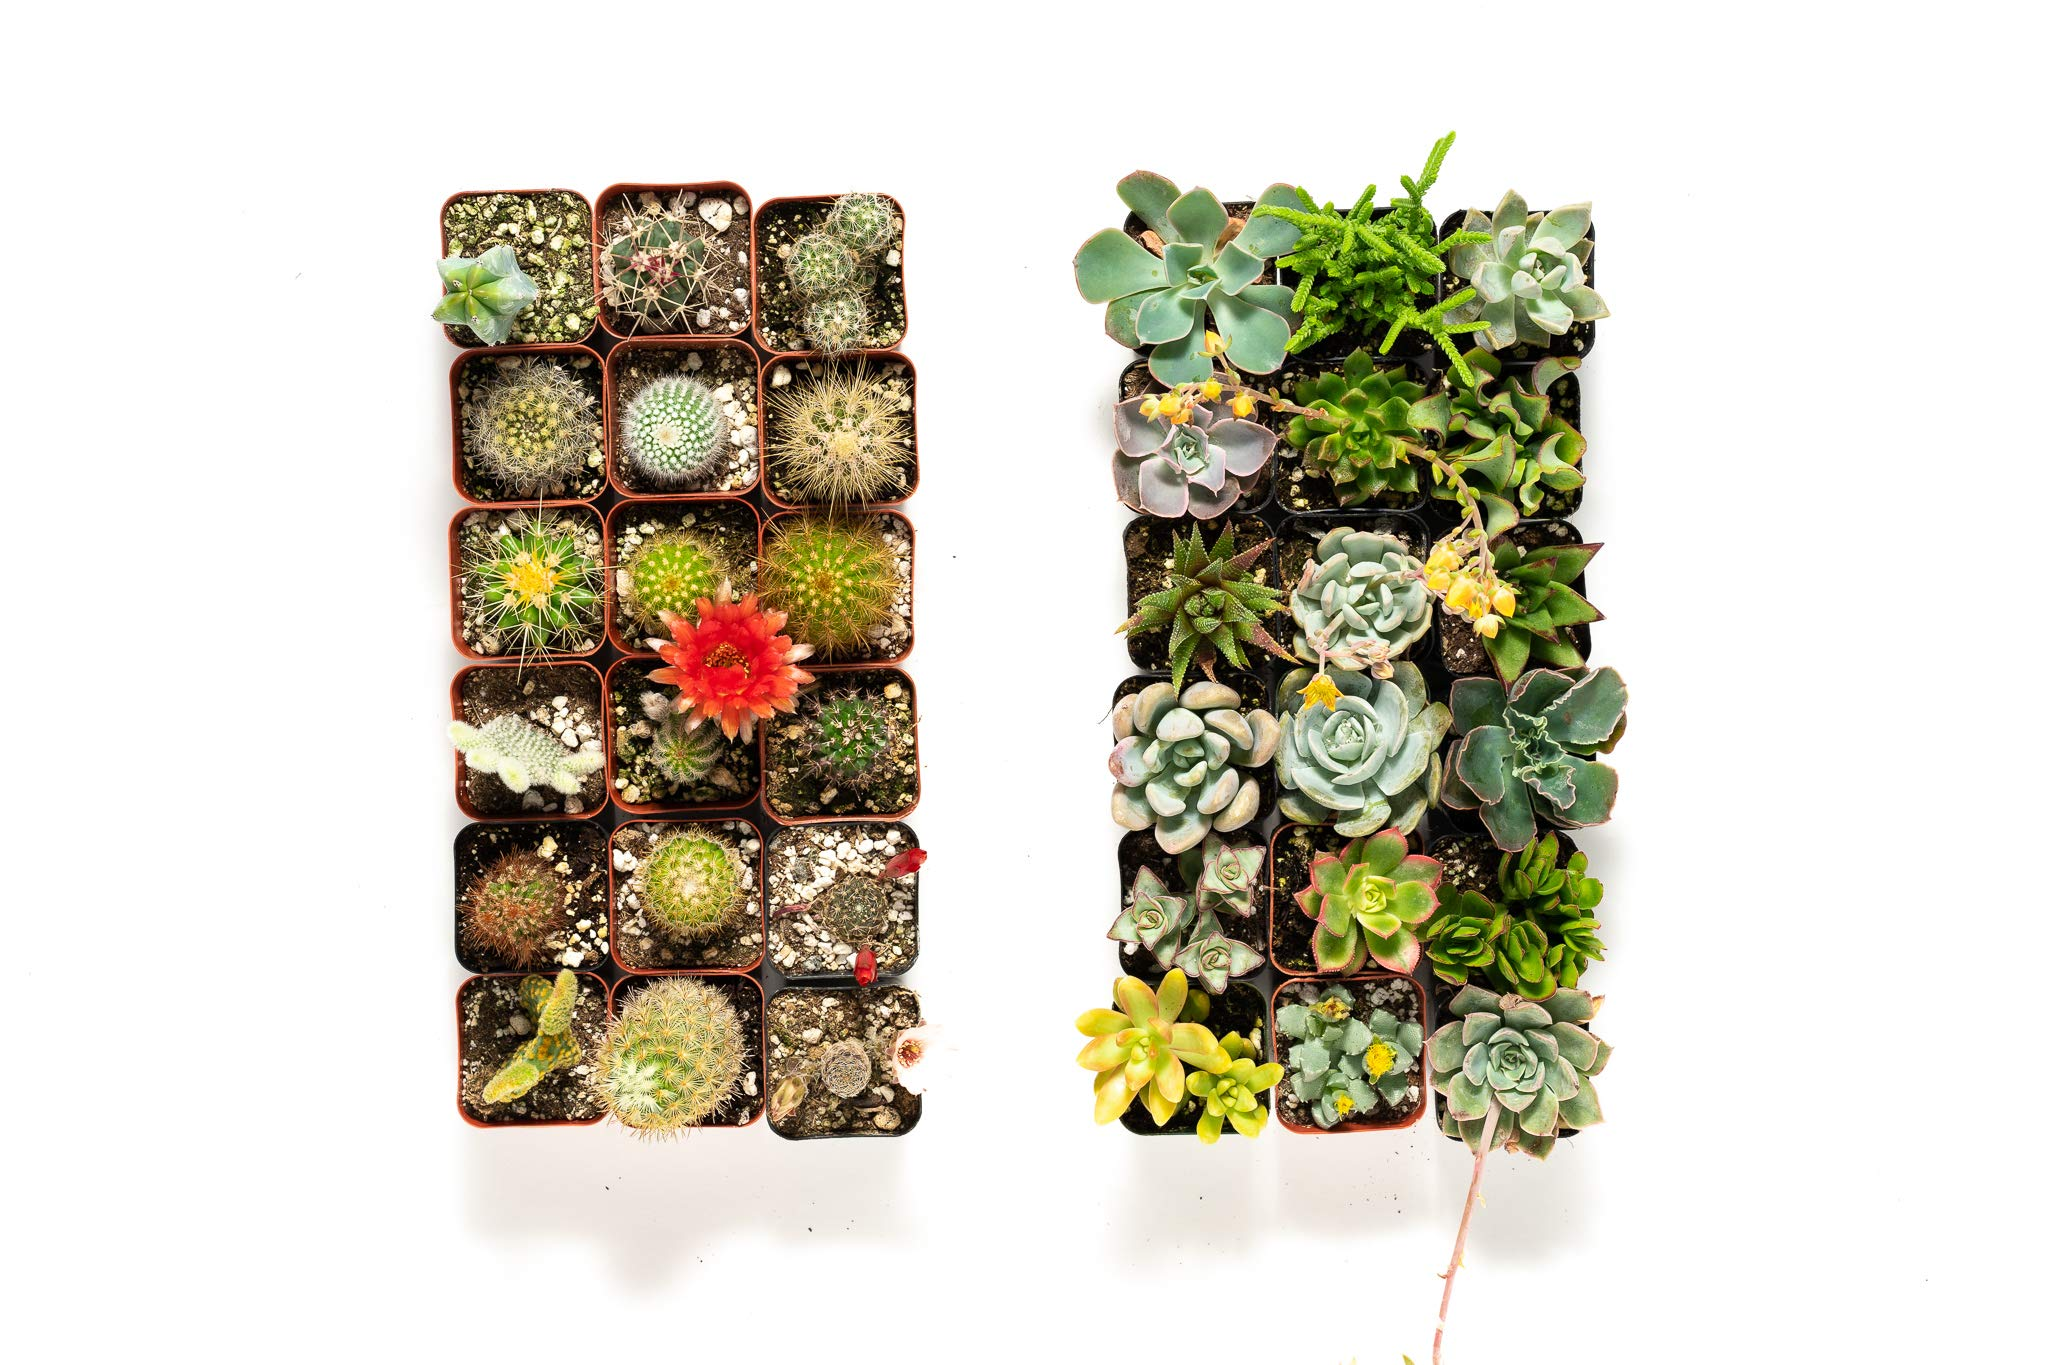 36 Succulent & Cactus Variety Pack- No Two Plants are Alike, Make Your Garden Unique with A Beautiful Collection of Succulents and Cacti - by Jiimz by Jiimz (Image #1)